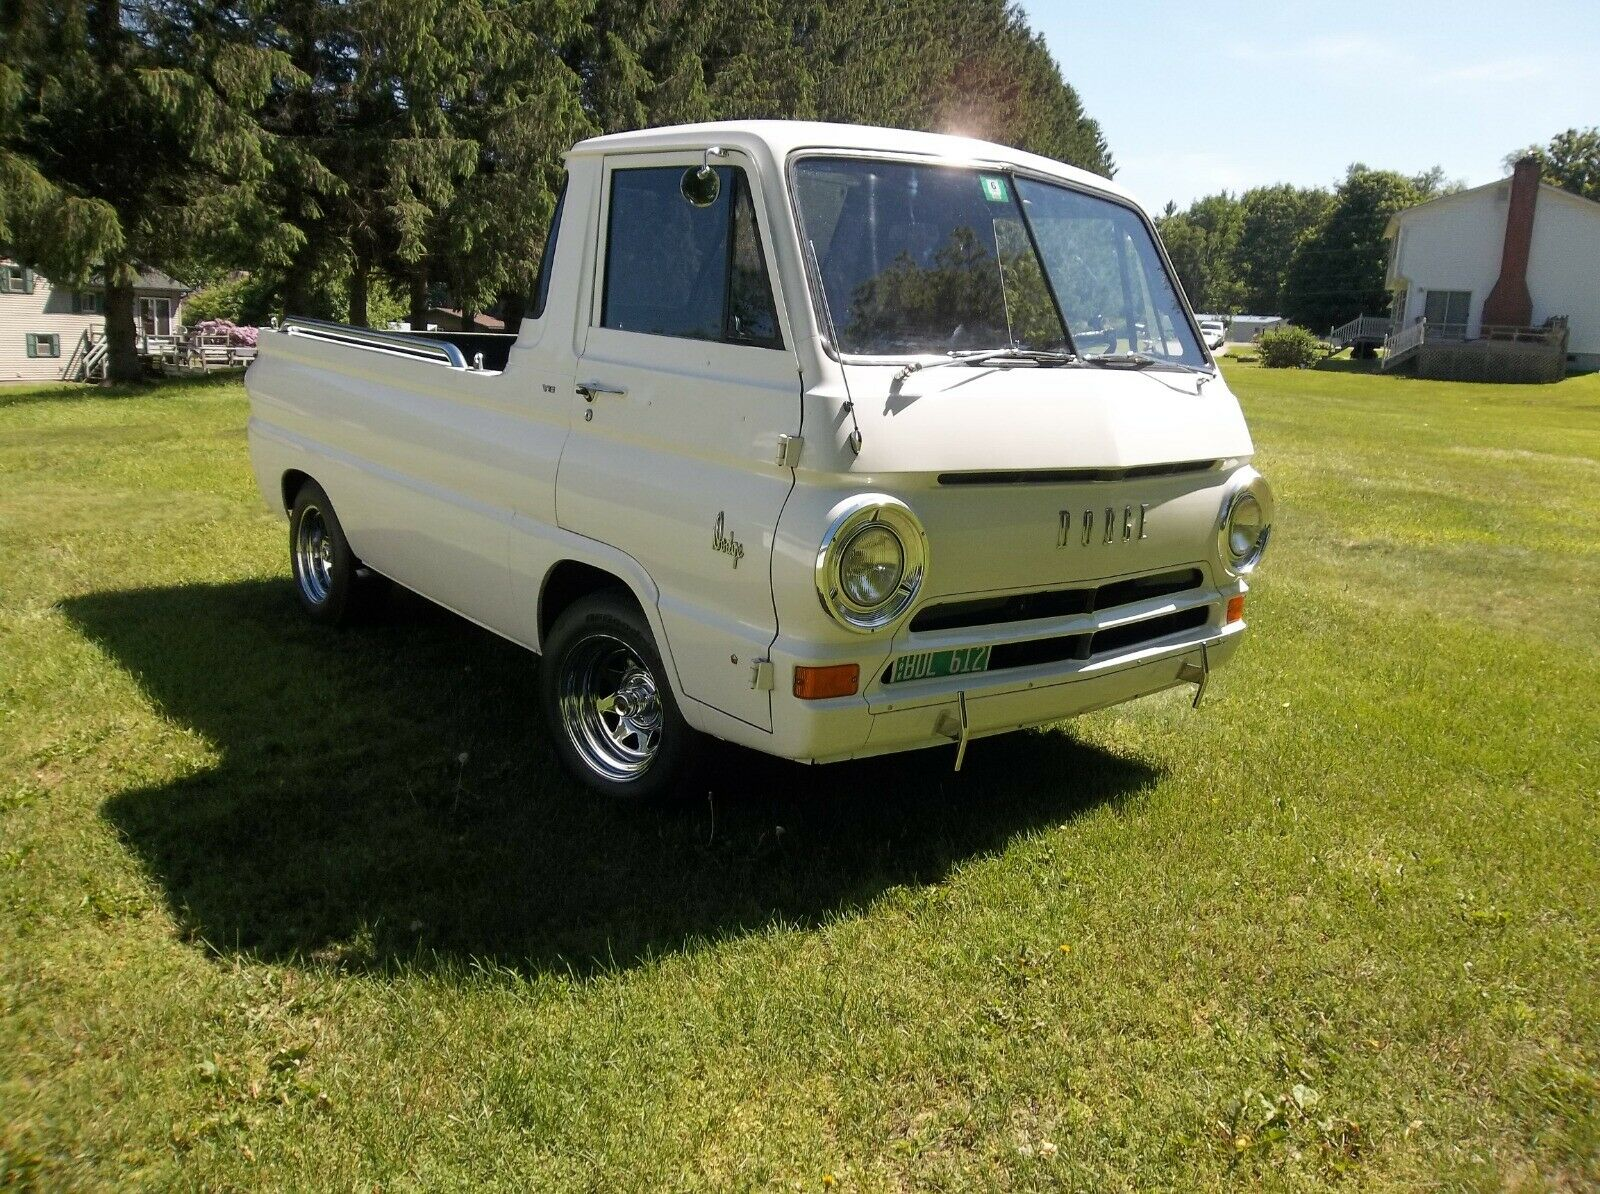 Cab Over, Cab Forward, Whatever. This 1965 Dodge A-100 Rules!